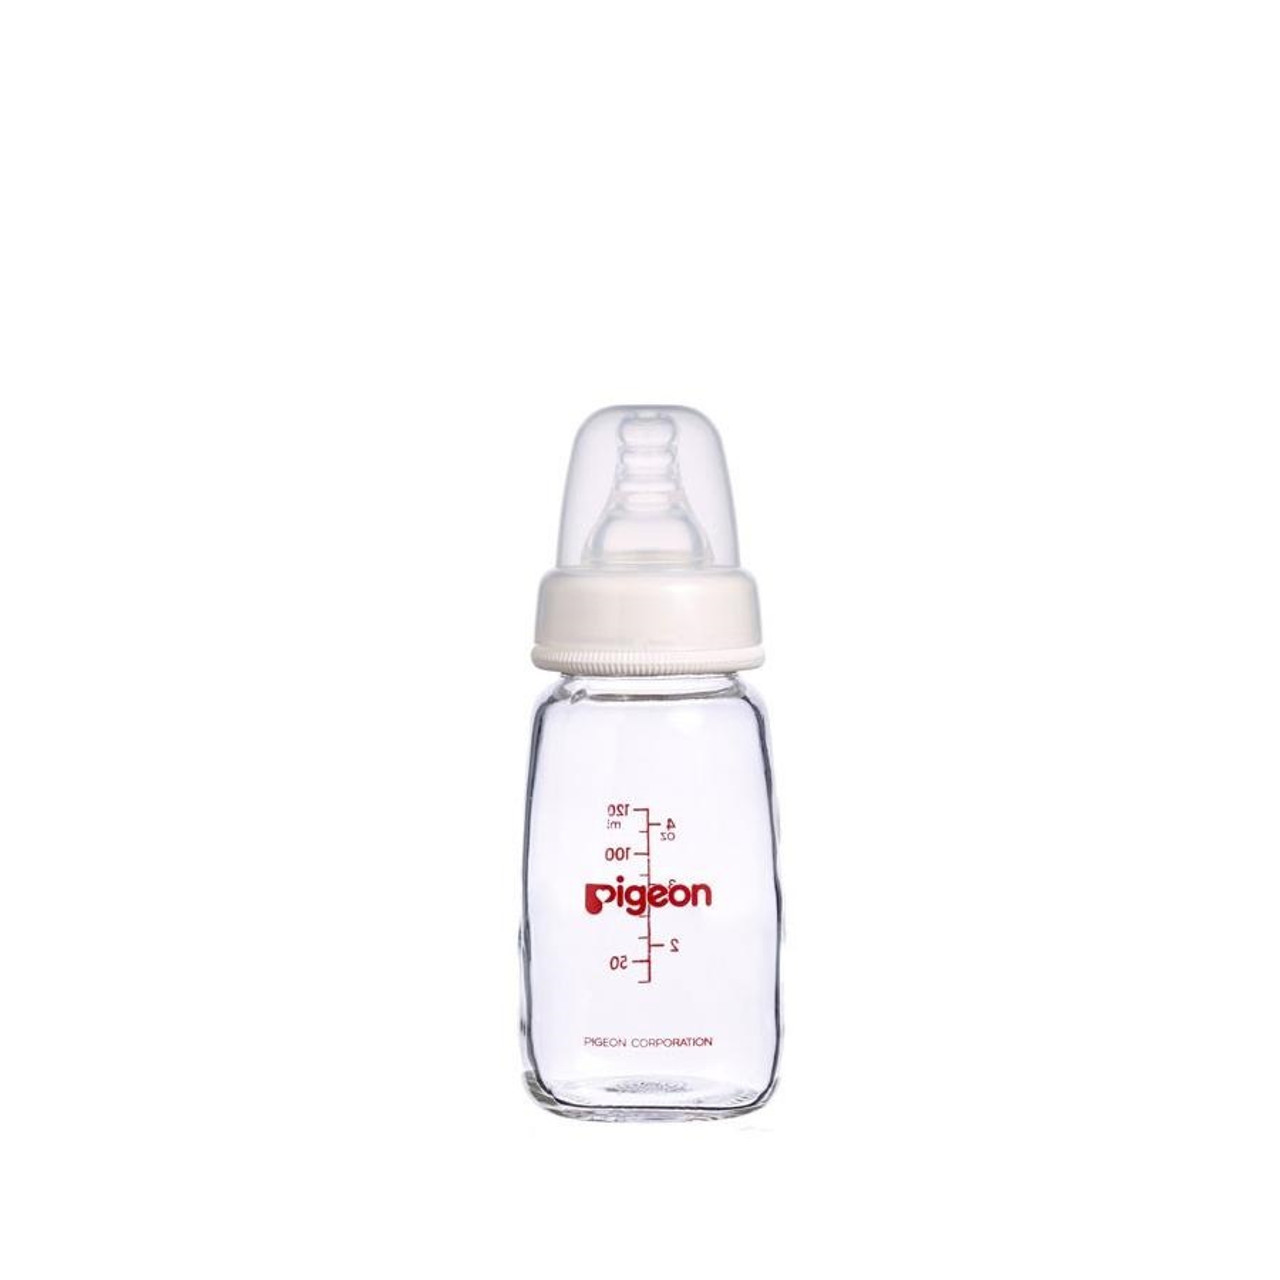 Pigeon Flexible Peristaltic Glass Slim Neck Bottle - 120ml at Baby Barn Discounts The Pigeon Flexible™ Glass Bottle is a slim neck bottle for use with Flexible™ Peristaltic Teats.